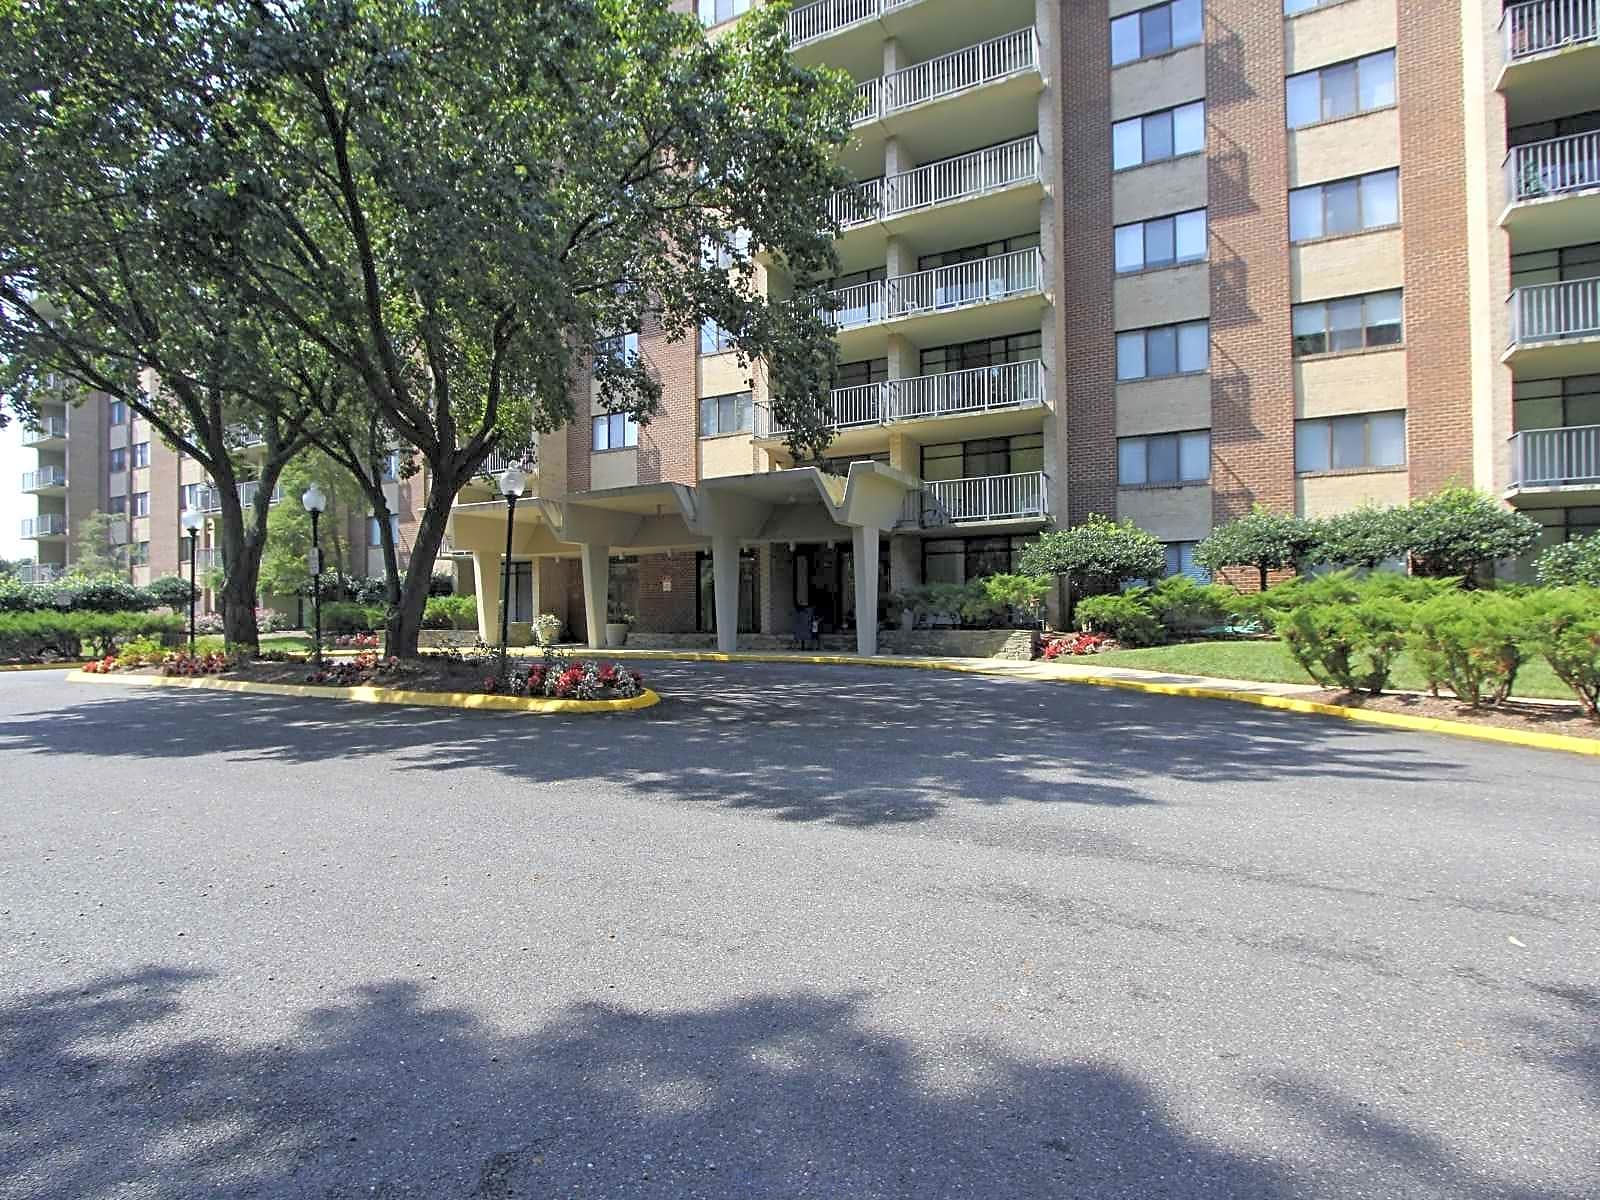 Westwood place apartments fort washington md 20744 for Academy de cuisine bethesda md